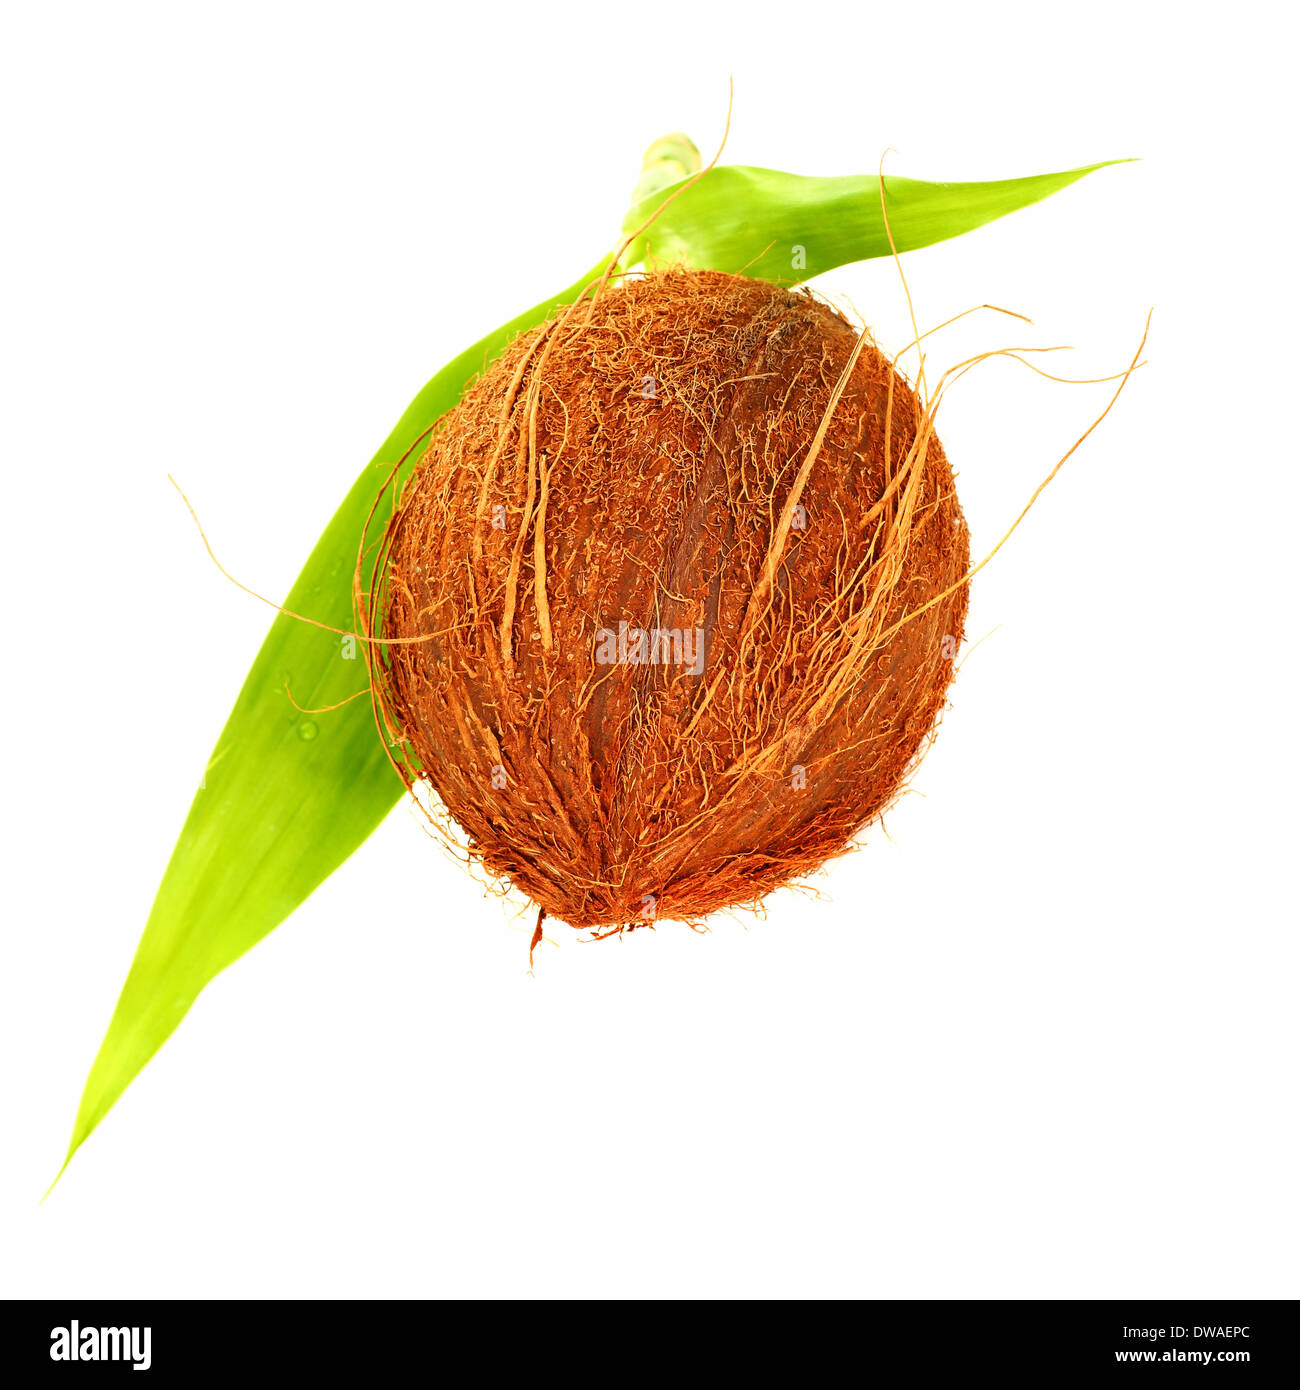 coconut isolated on white background, brown hairy hard tropical